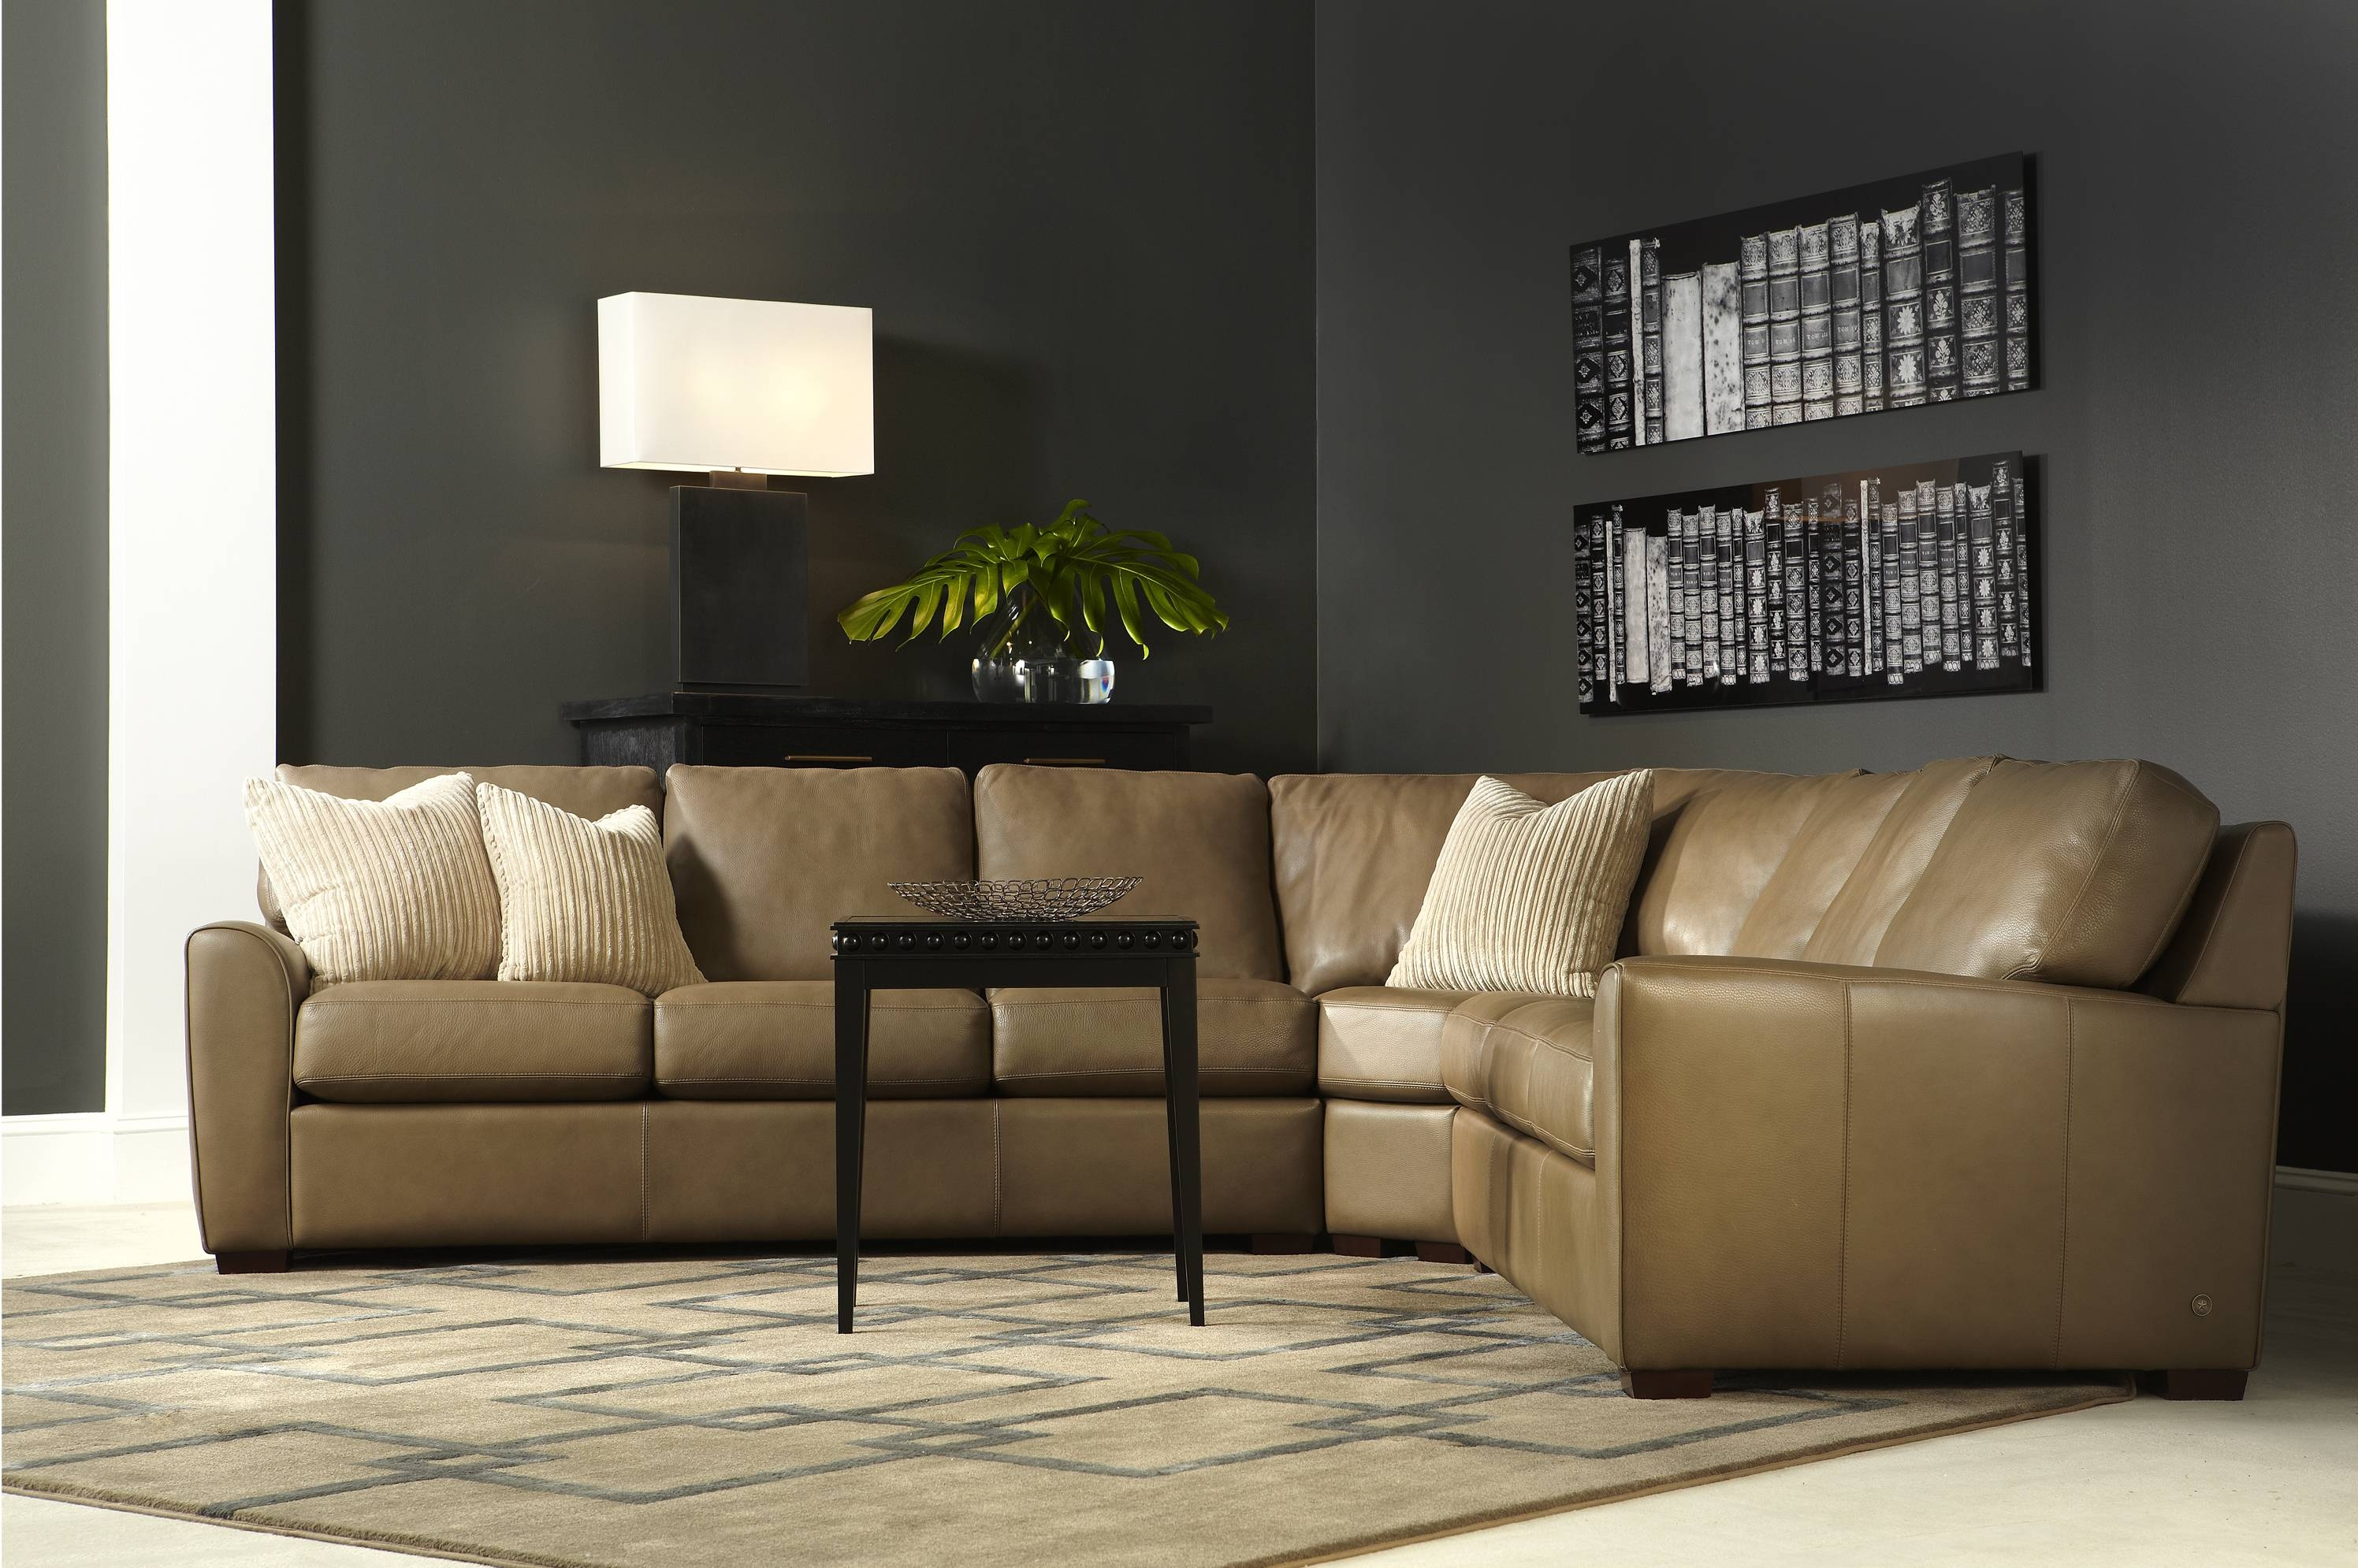 Sectional Sofas - Elegance And Style Tailored Just For Youand pertaining to American Made Sectional Sofas (Image 21 of 30)